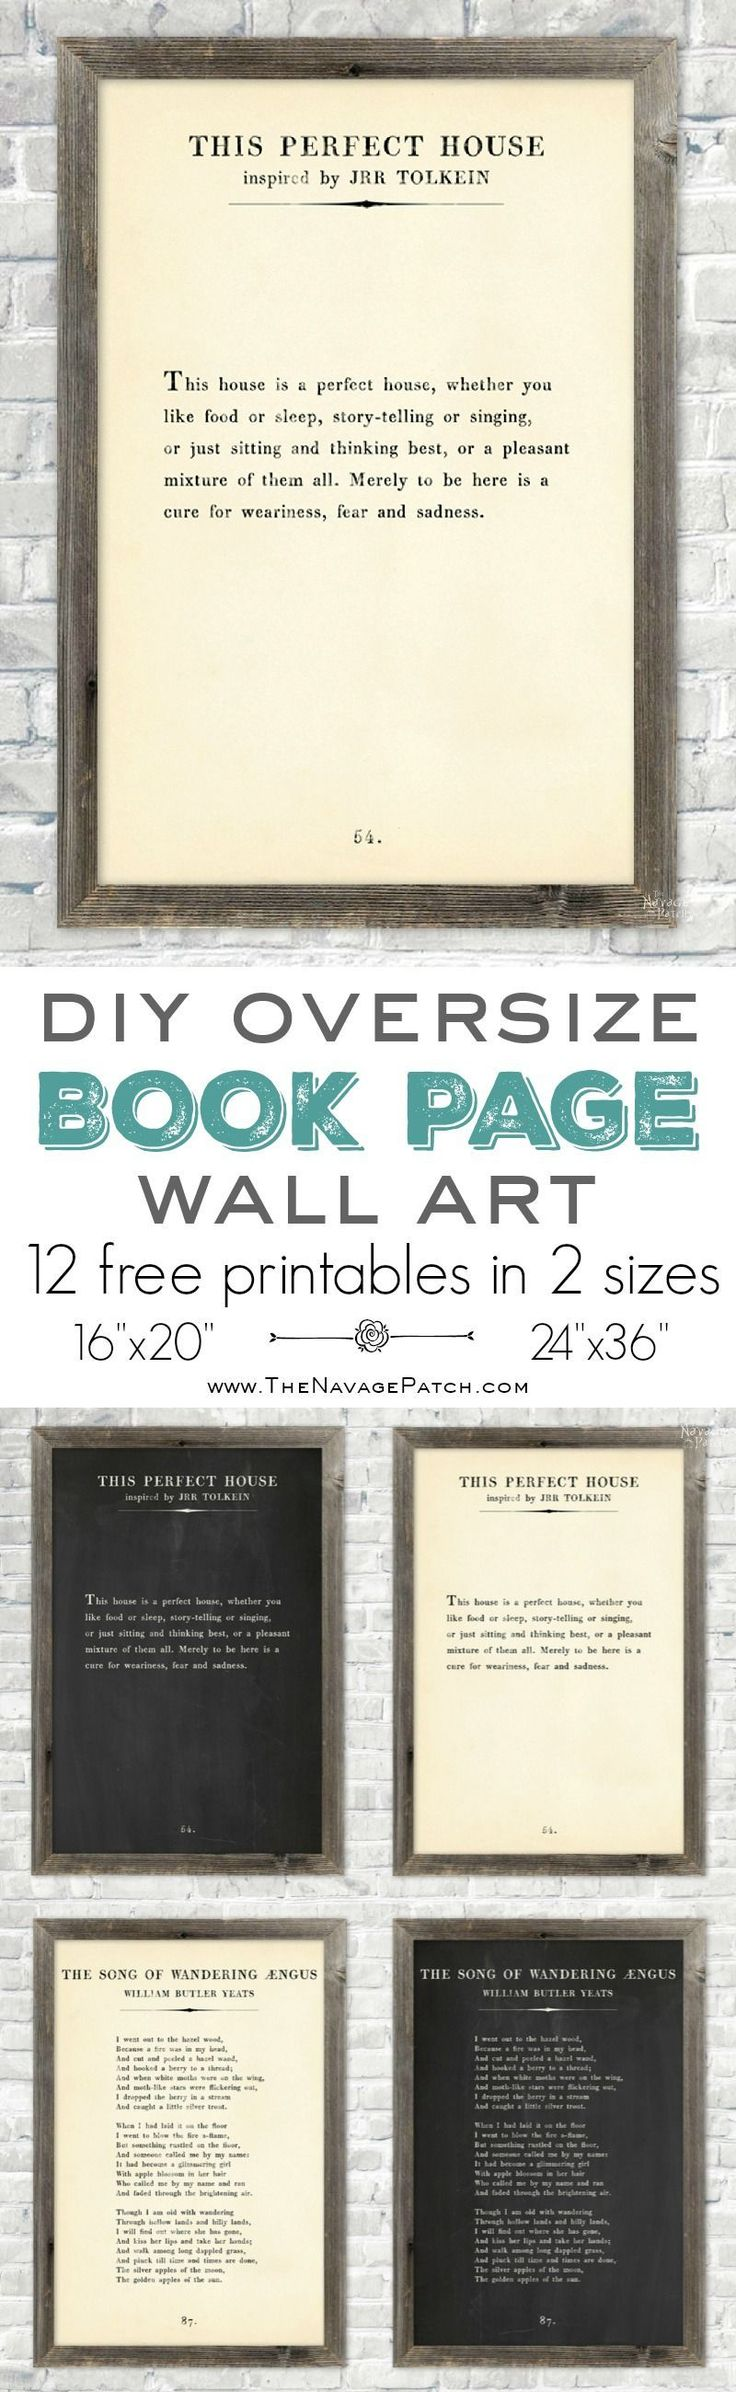 Oversize Book Page Wall Art {12 Free Printables} | 12 free printable high-resolution book page wall art | Amazing set of free printable book page quotes | How to make your own oversized farmhouse style book page quote art | Engineering print vs poster pri